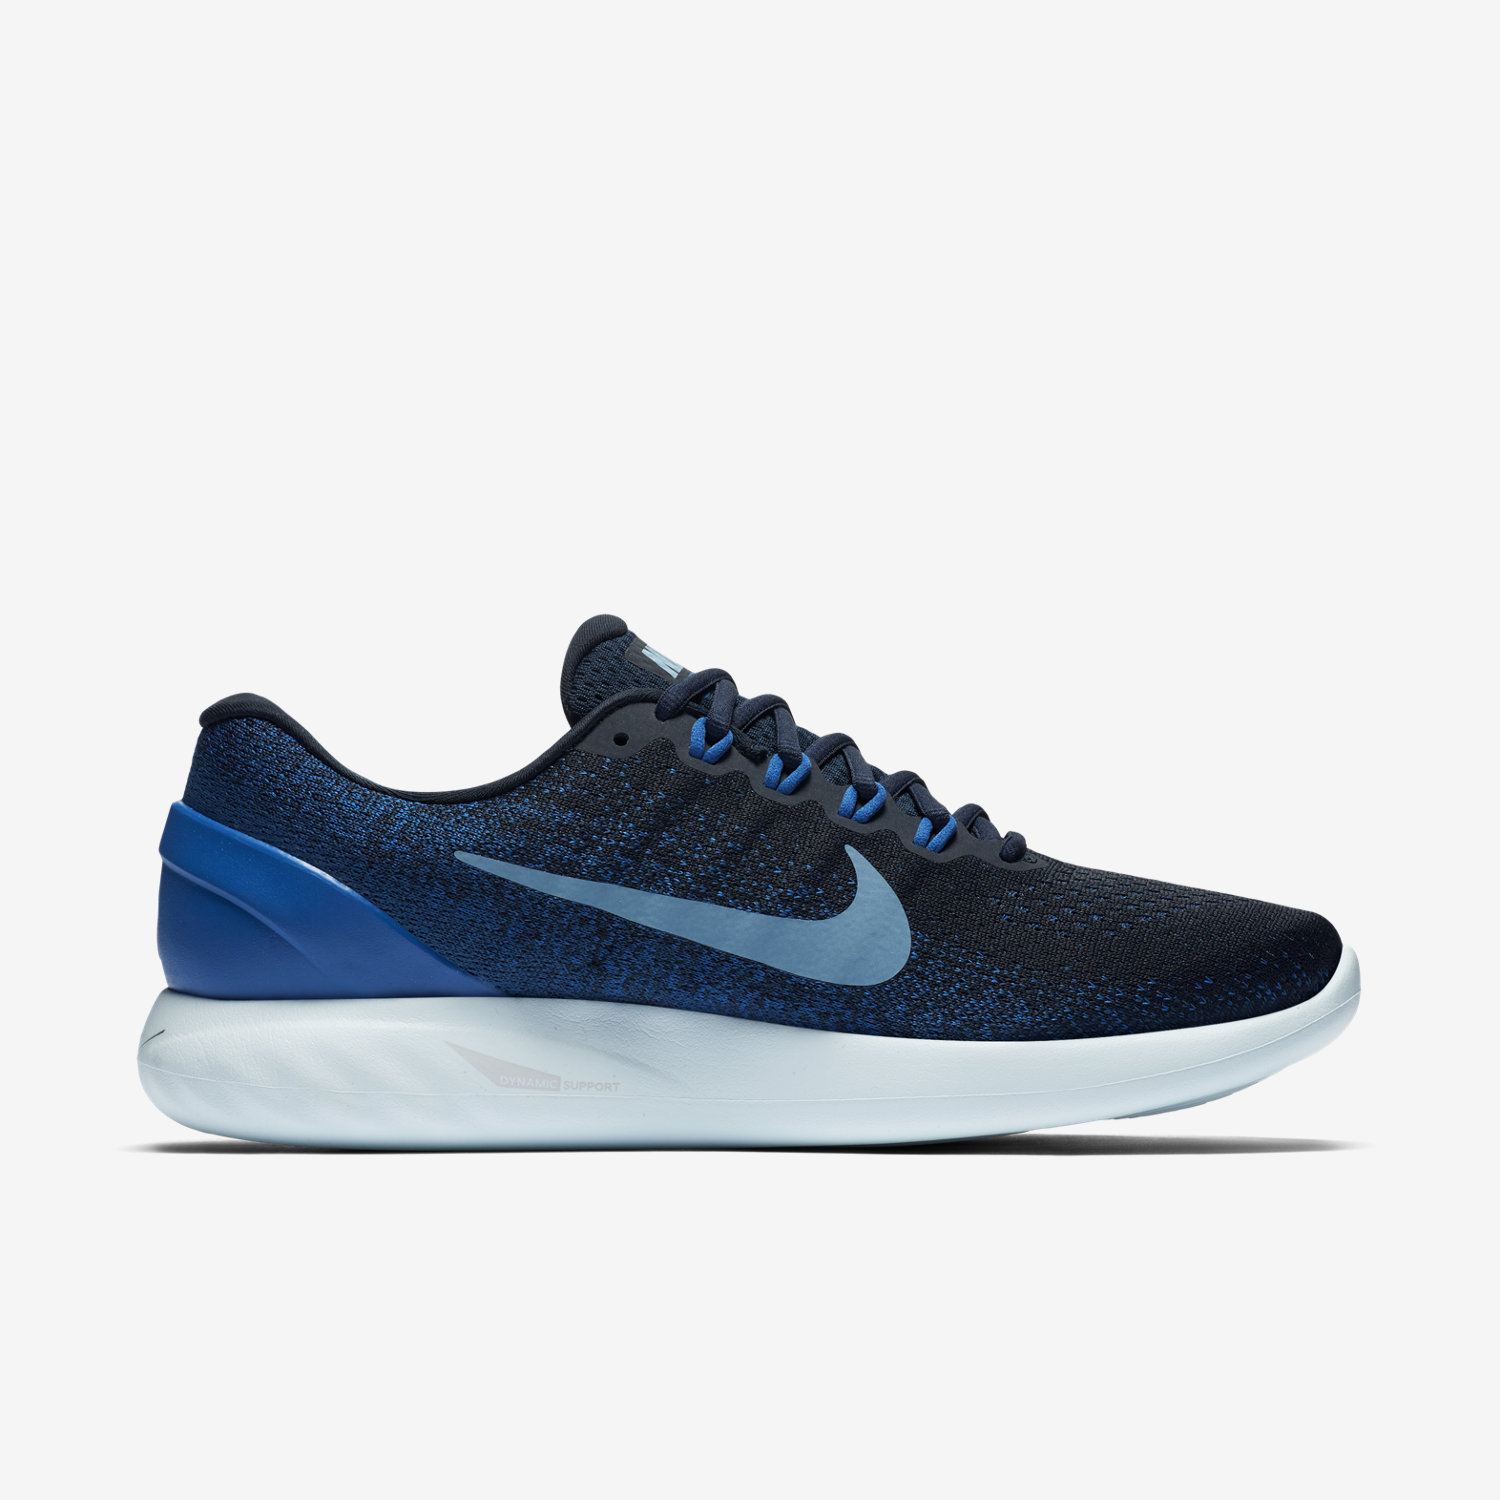 Nike lunarglide mens blue shoes for Nike official site italia